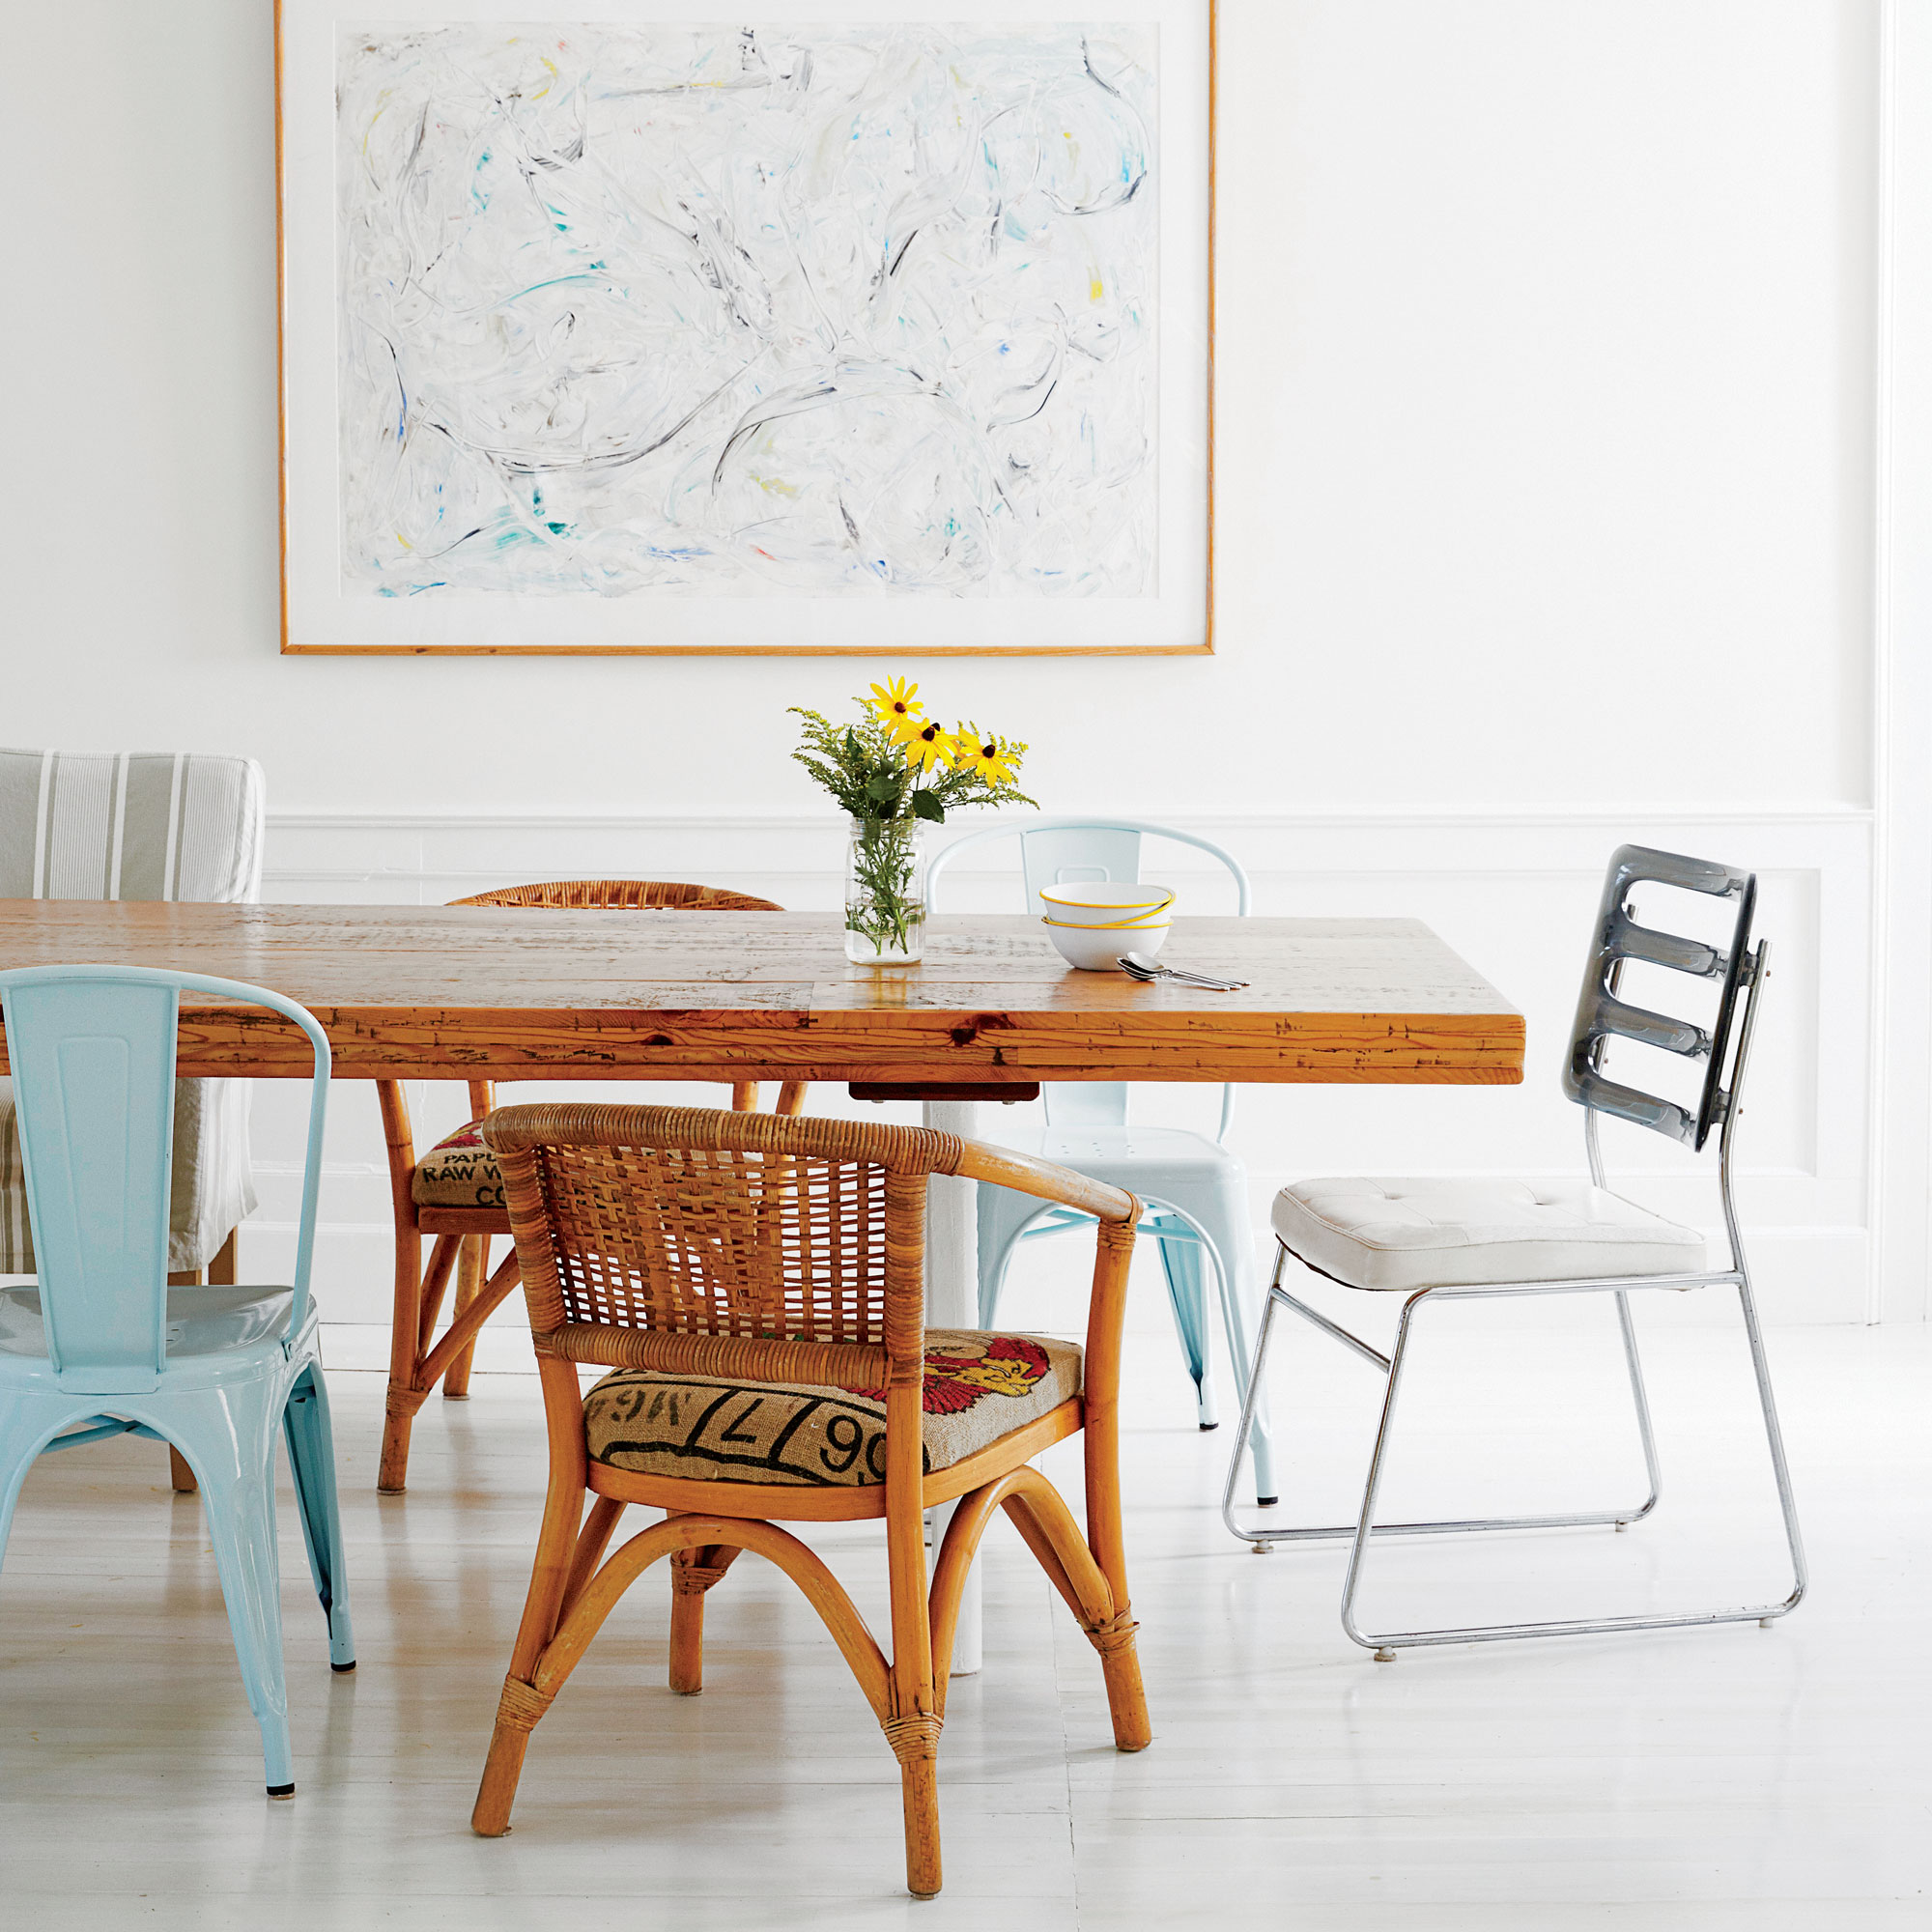 Crisp white walls and light floors create a clean backdrop that nicely contrasts the warm wooden table and a band of chairs in varying materials and colors.                             Idea Spotlight                             Don't be afraid to mix and match. A collection of mismatched chairs and benches (enough to seat 22!) in this dining room makes for a come one, come all atmosphere.